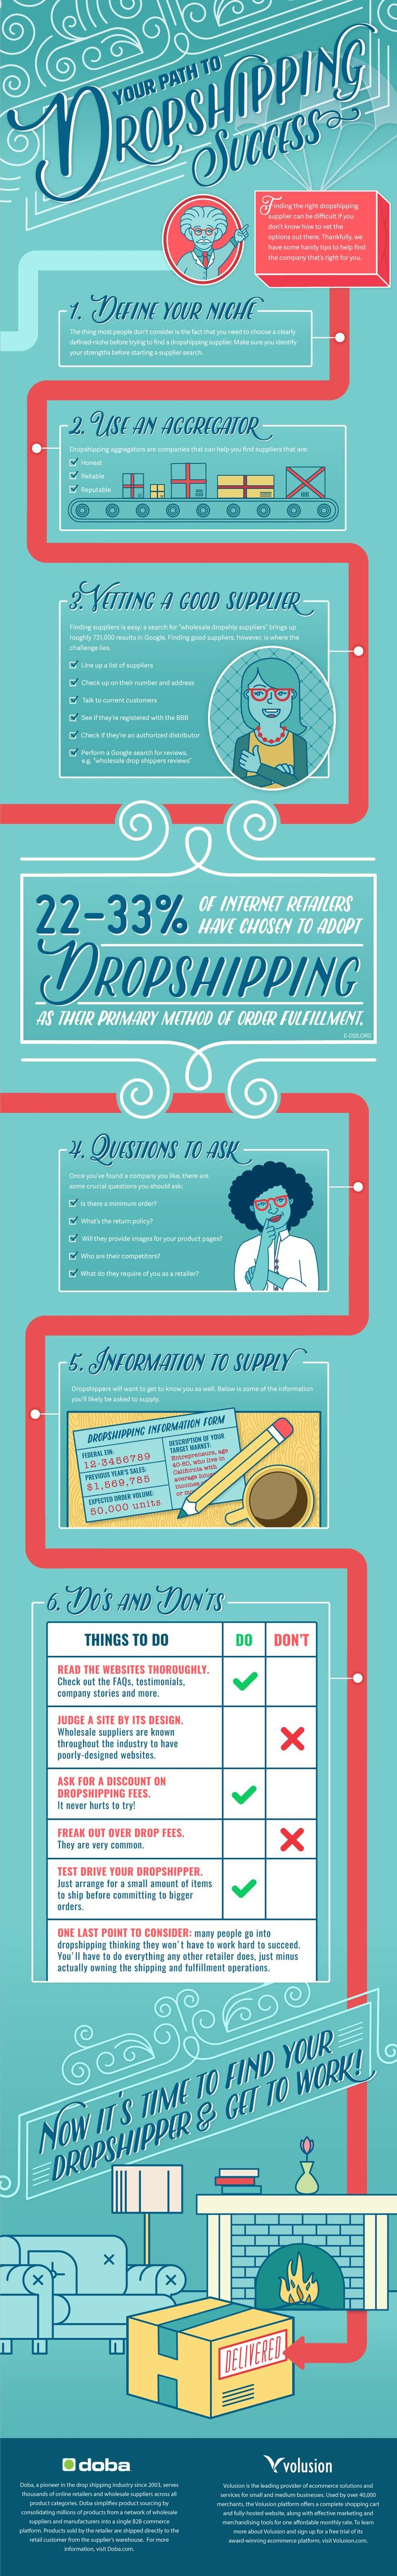 Your Path to Dropshipping Success #Infographic #Business